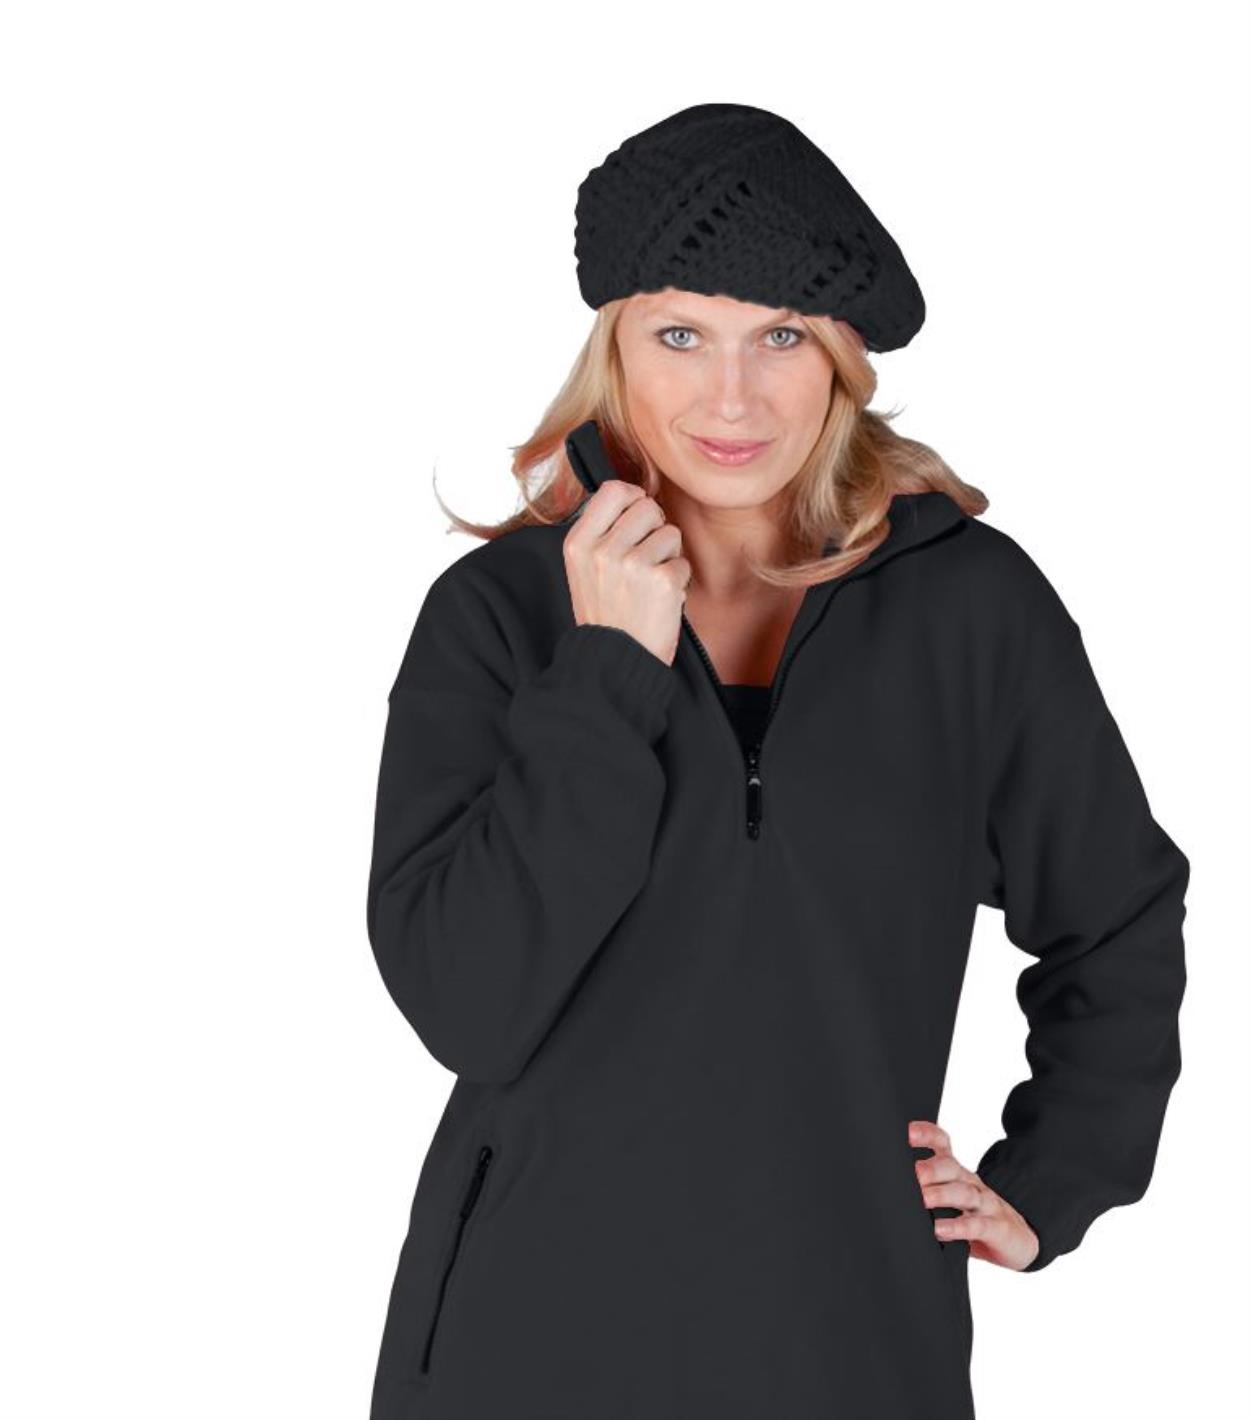 RK30 - POLARWARE 1/4 ZIP NECK FLEECE